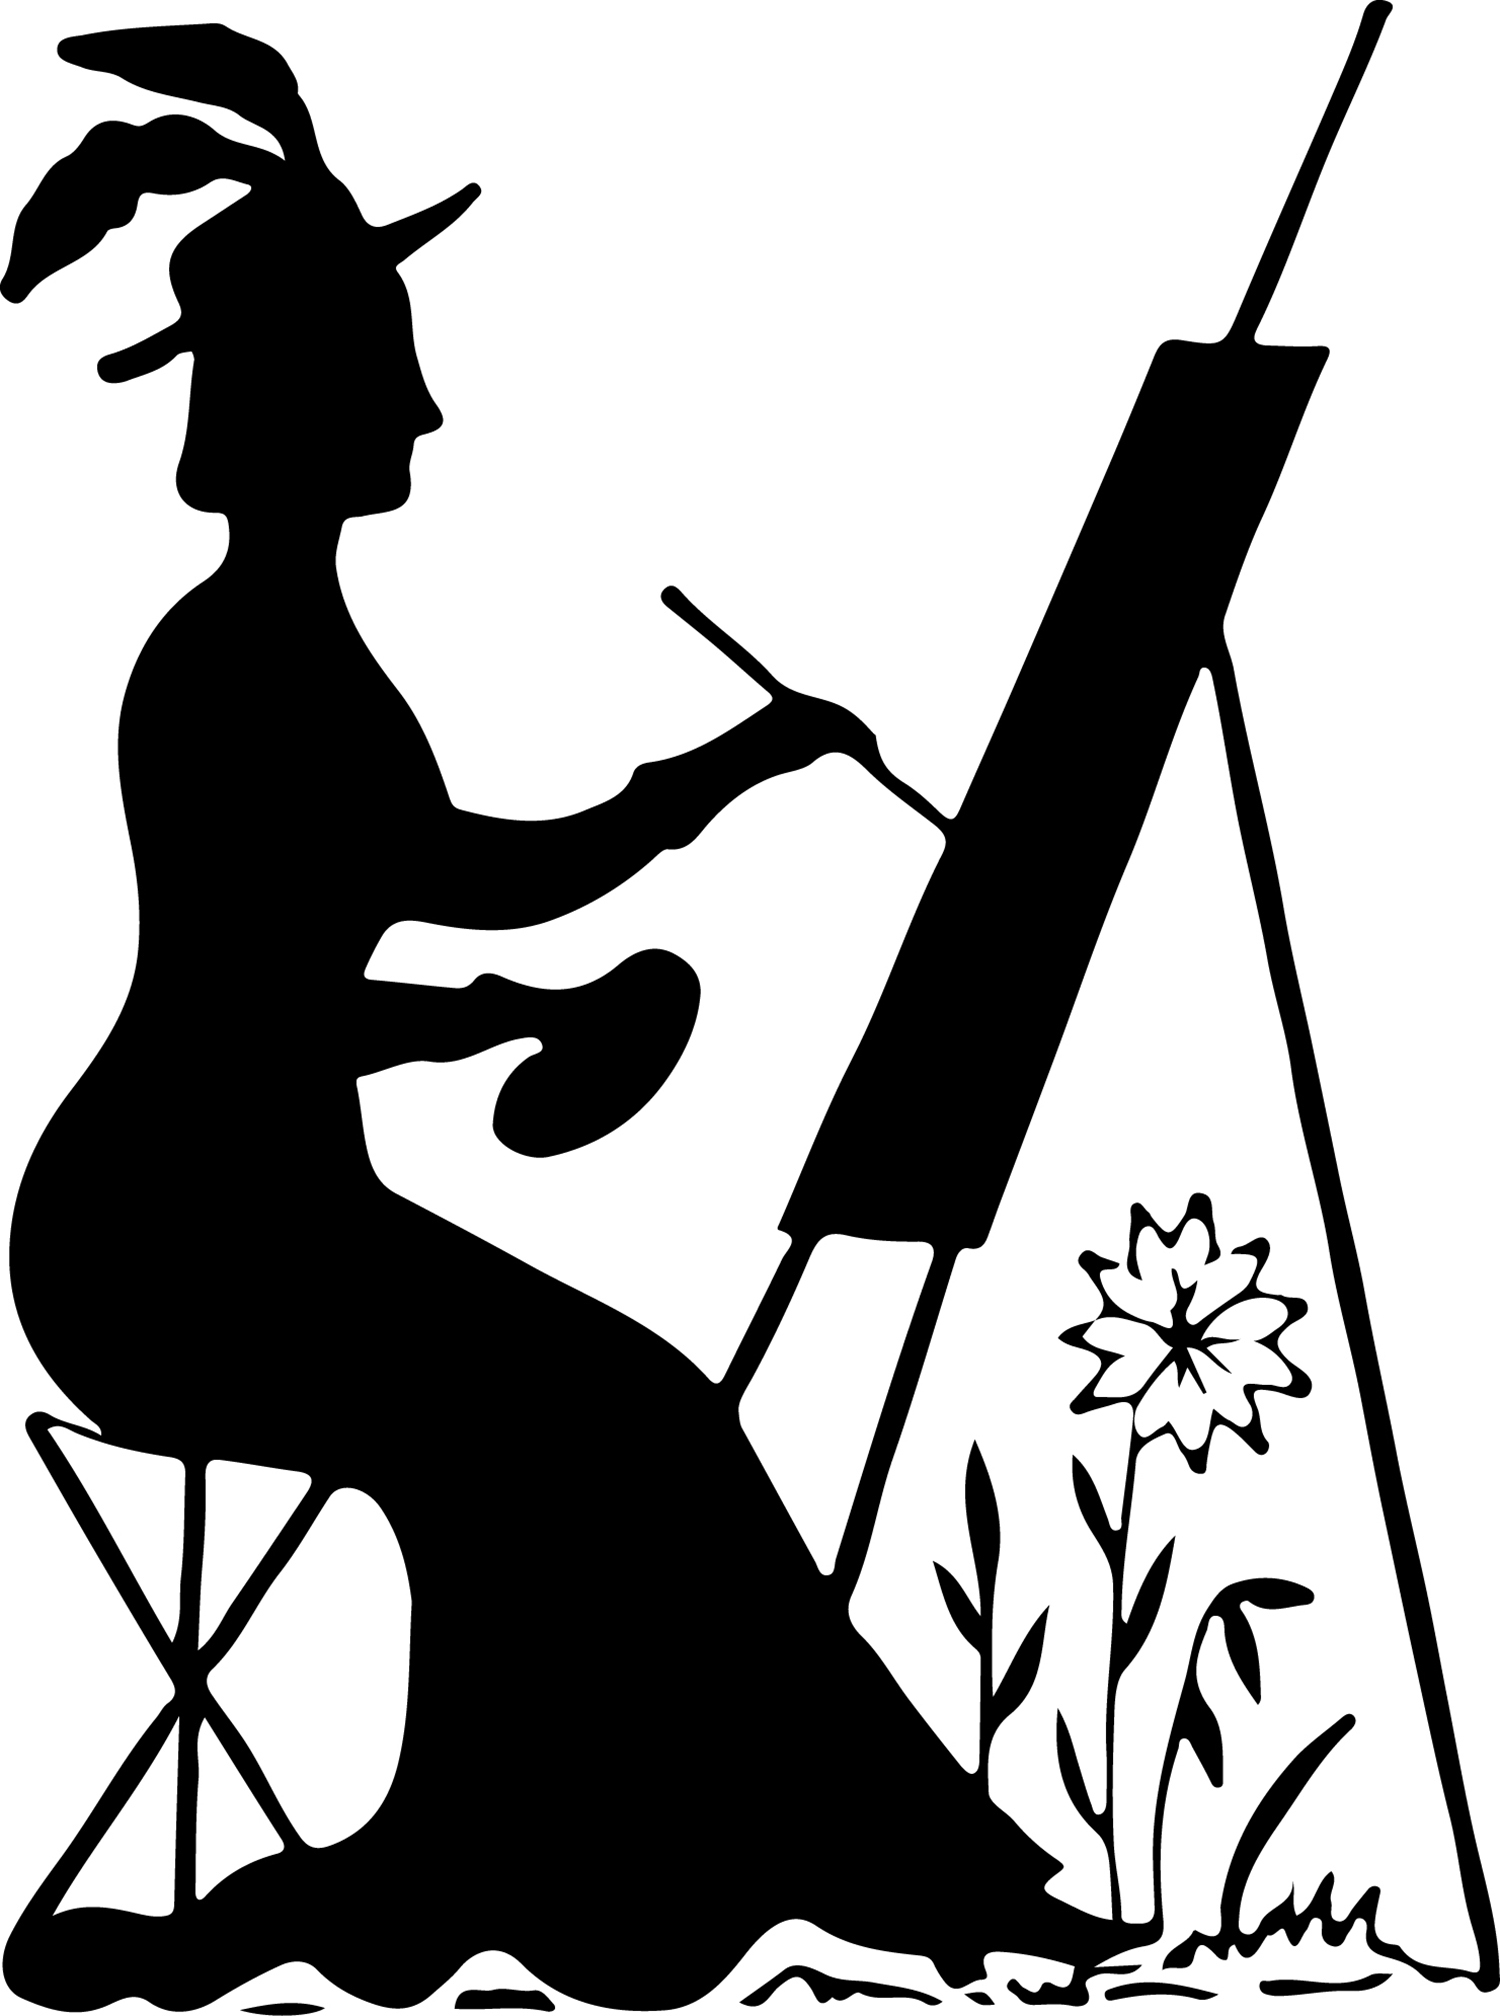 Woman Silhouette Painting Clipart - Clipart Kid